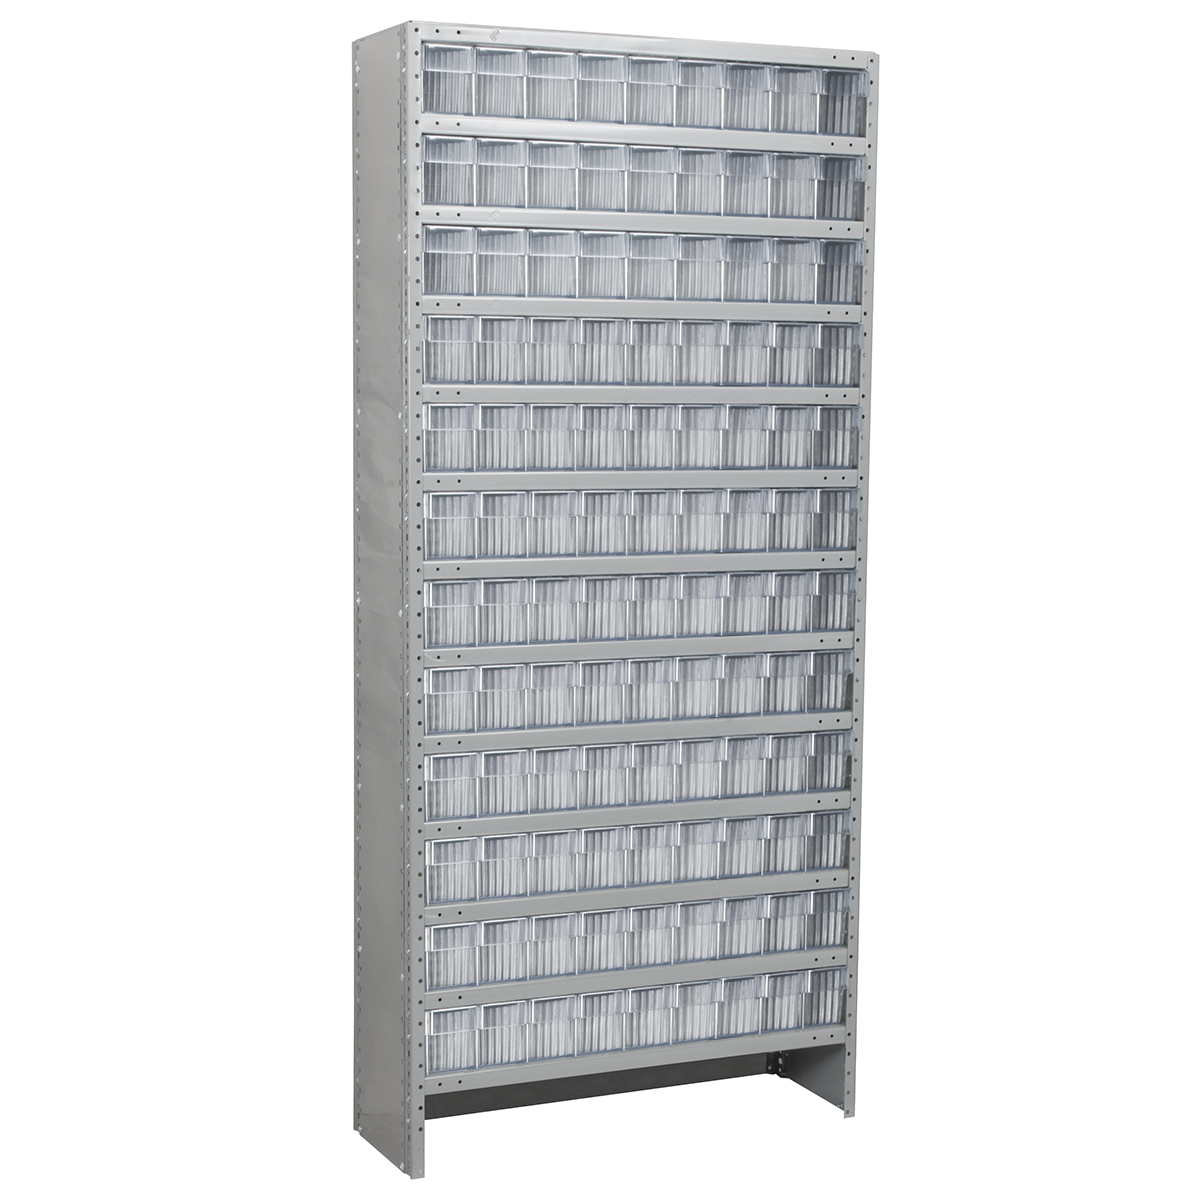 Enclosed Steel Shelving Kit, 12x36x79, 108 AkroDrawers, Gray/Clear.  This item sold in carton quantities of 1.